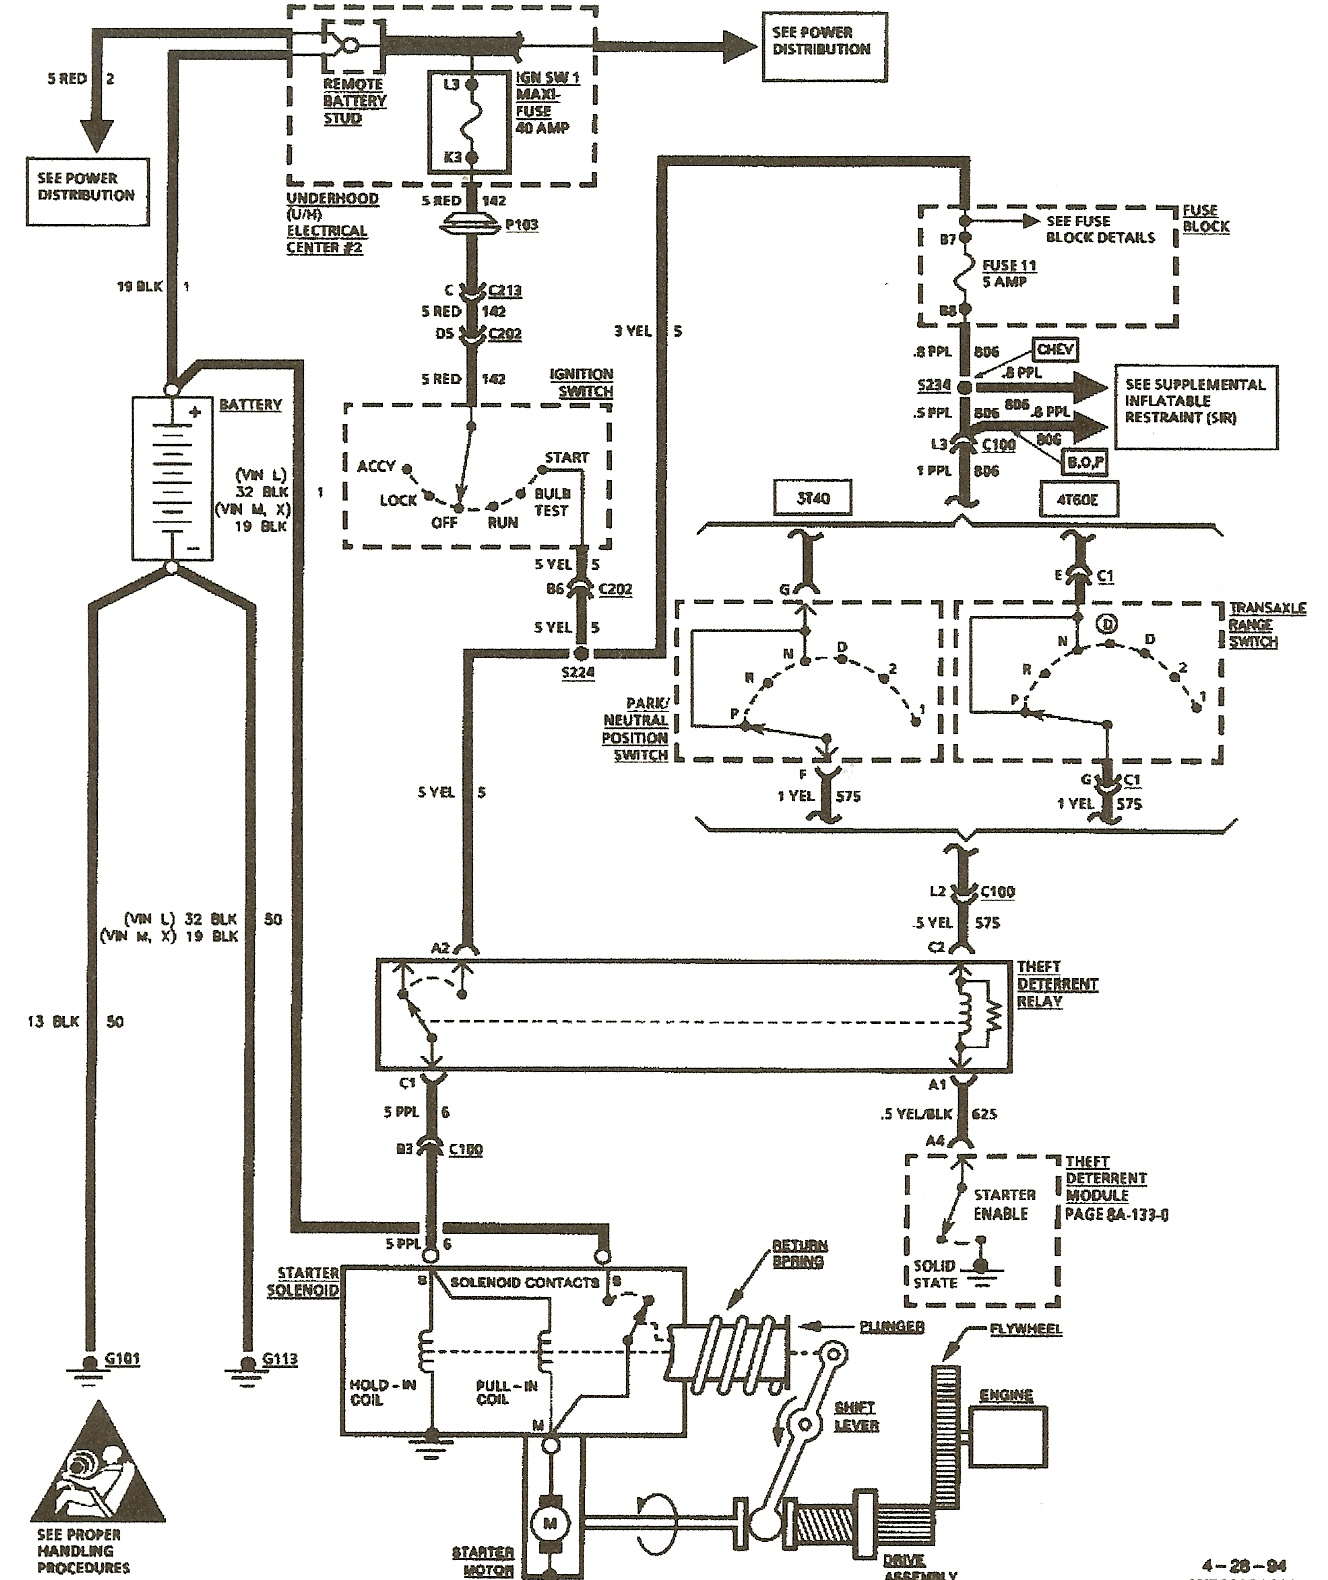 oldsmobile lss wiring diagram